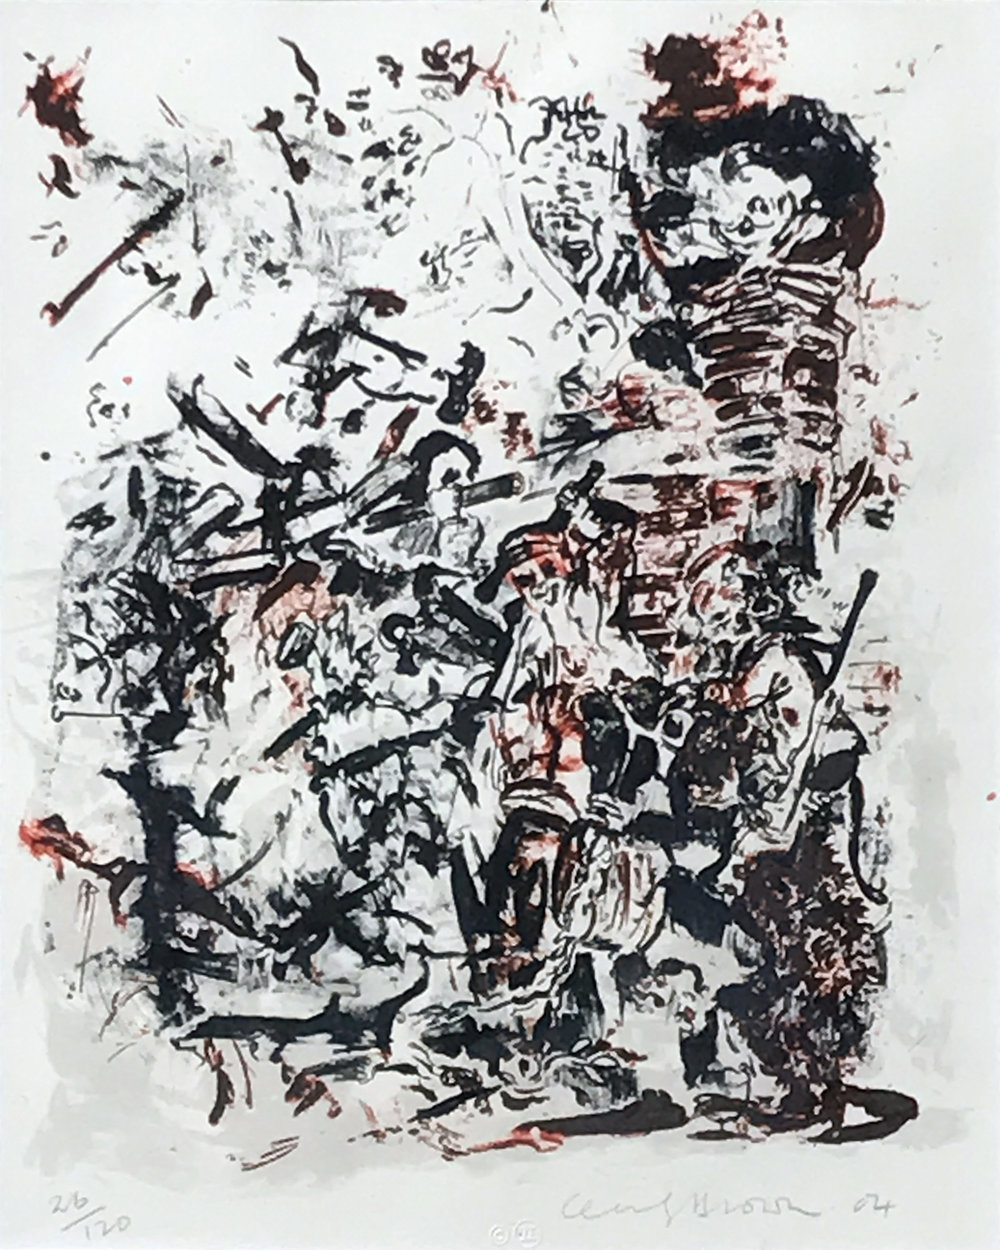 6.	Cecily Brown. Untitled, 2004. Lithograph ed. 26/120, 16 ¾ x 13 in.